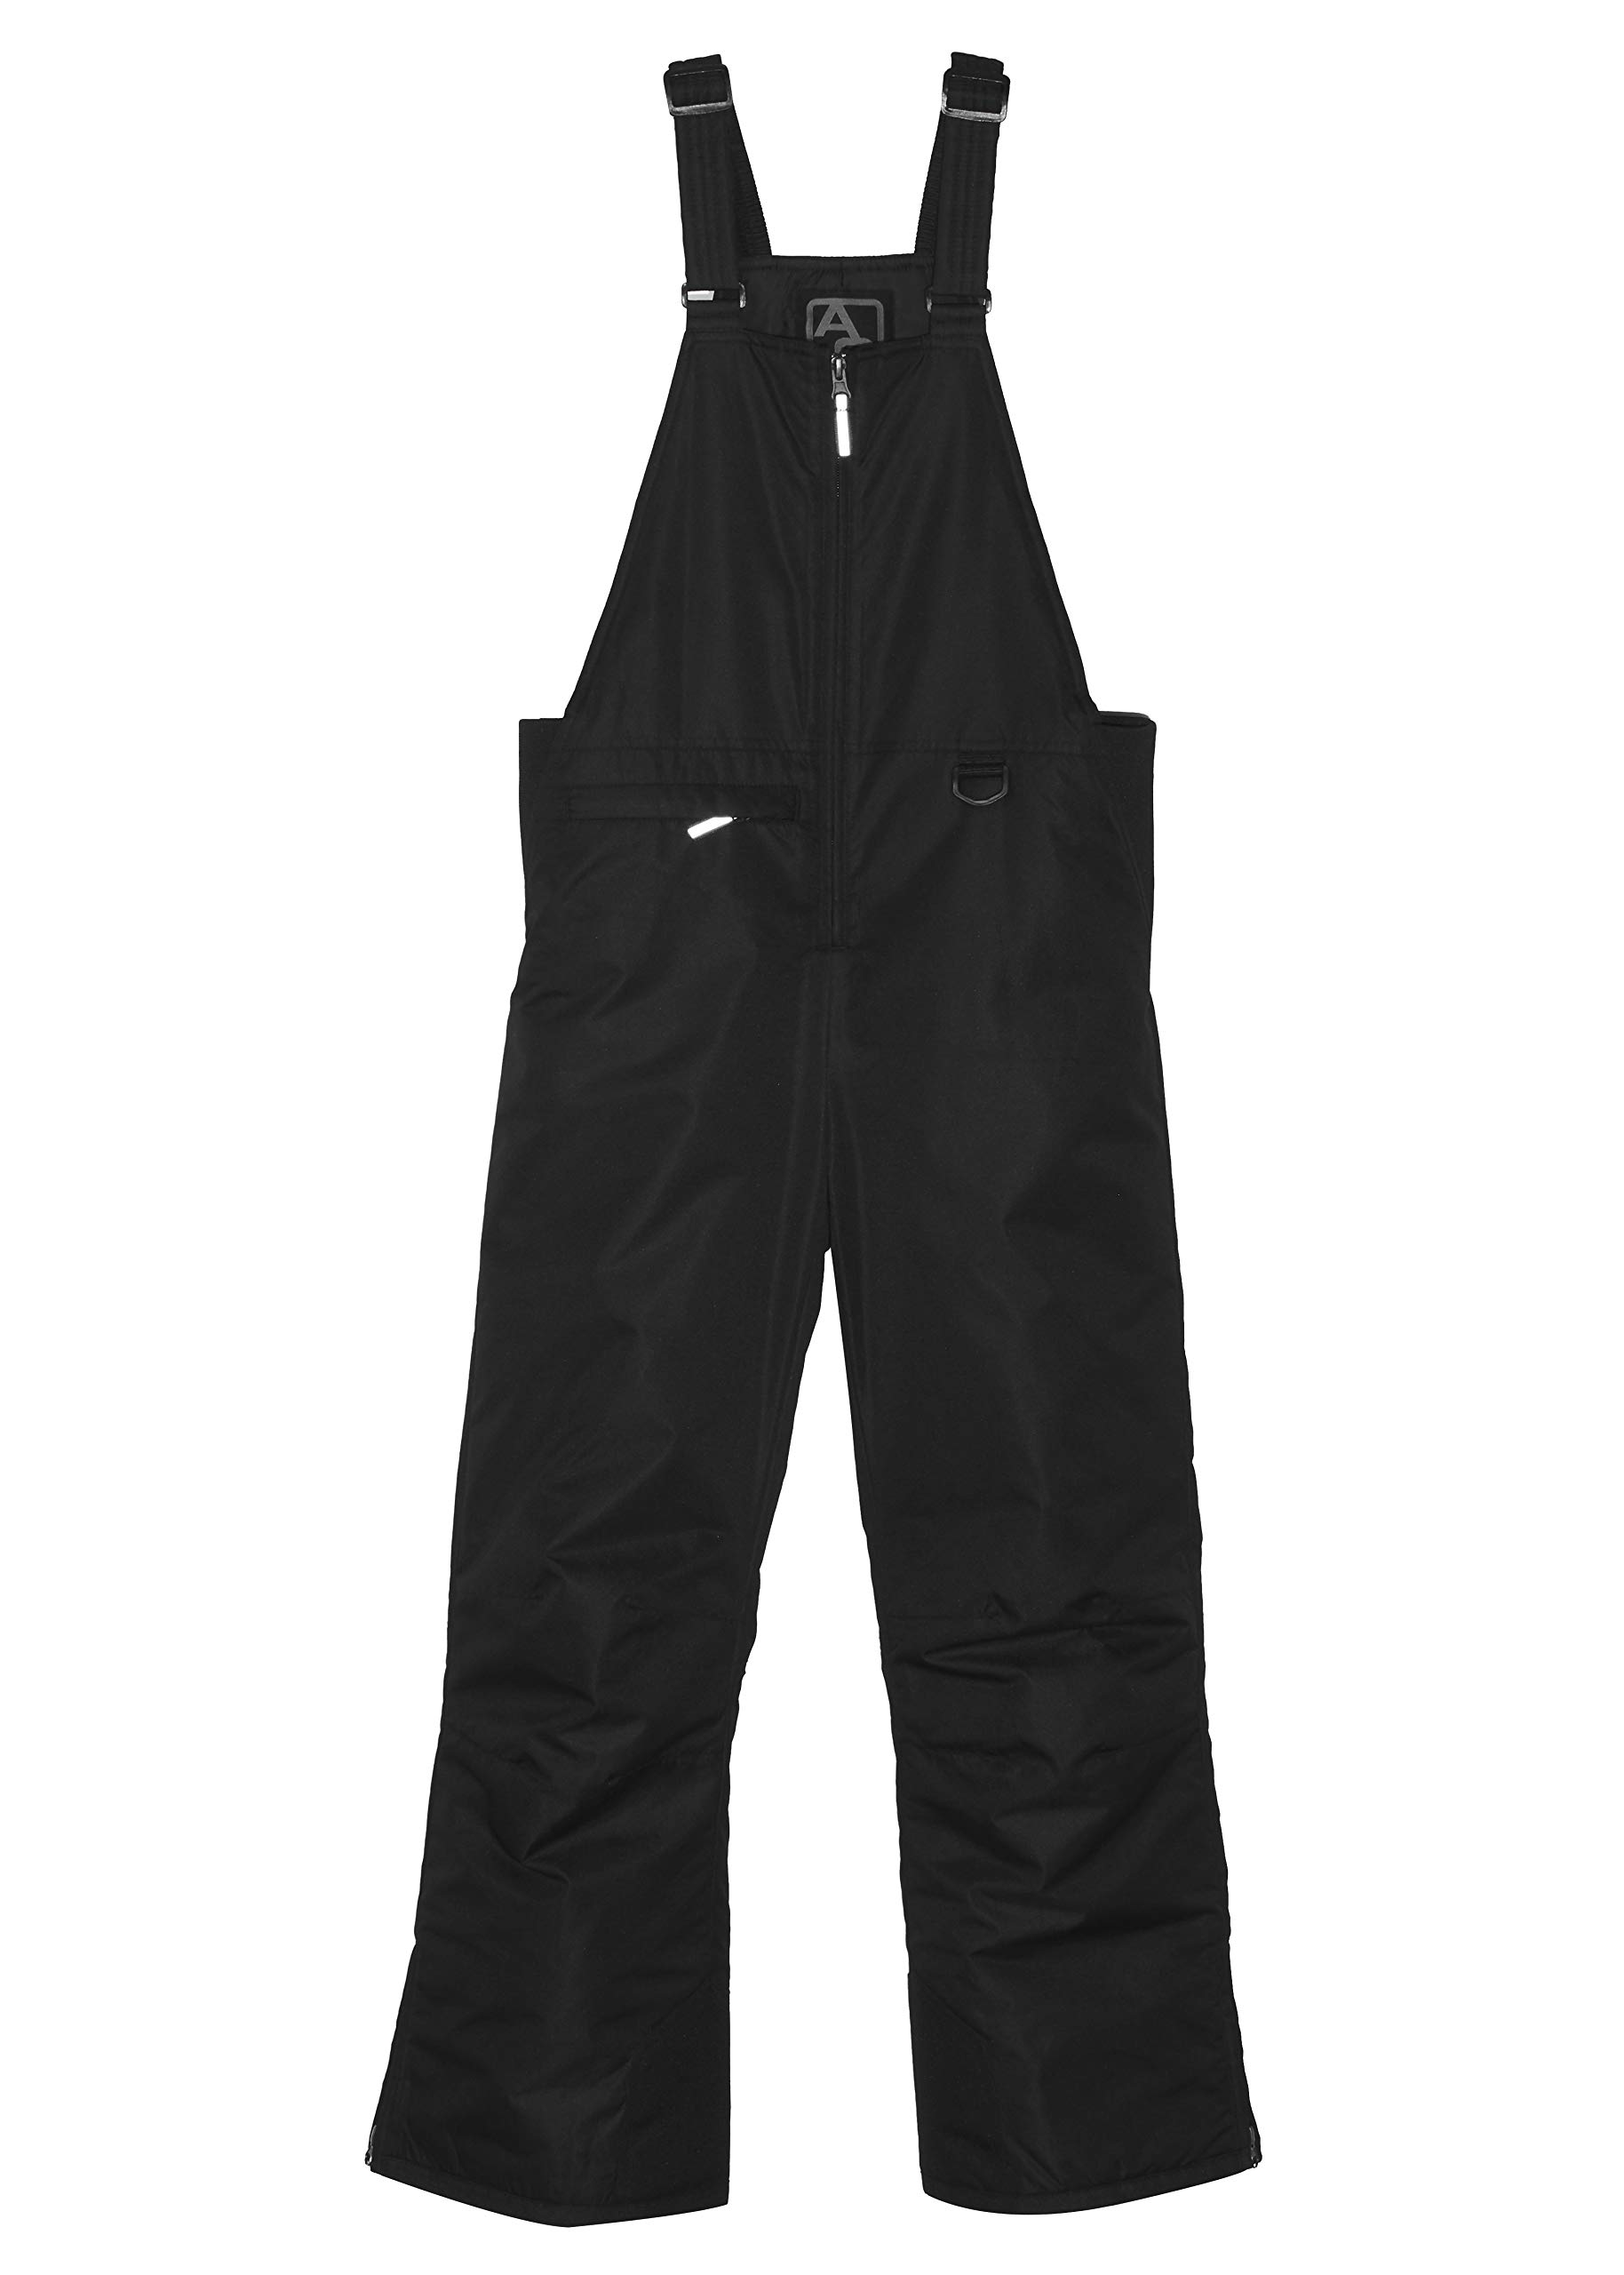 Arctic Quest Unisex Boys and Girls Unisex Ski & Snow Bib Overall, Black, 4 by Arctic Quest